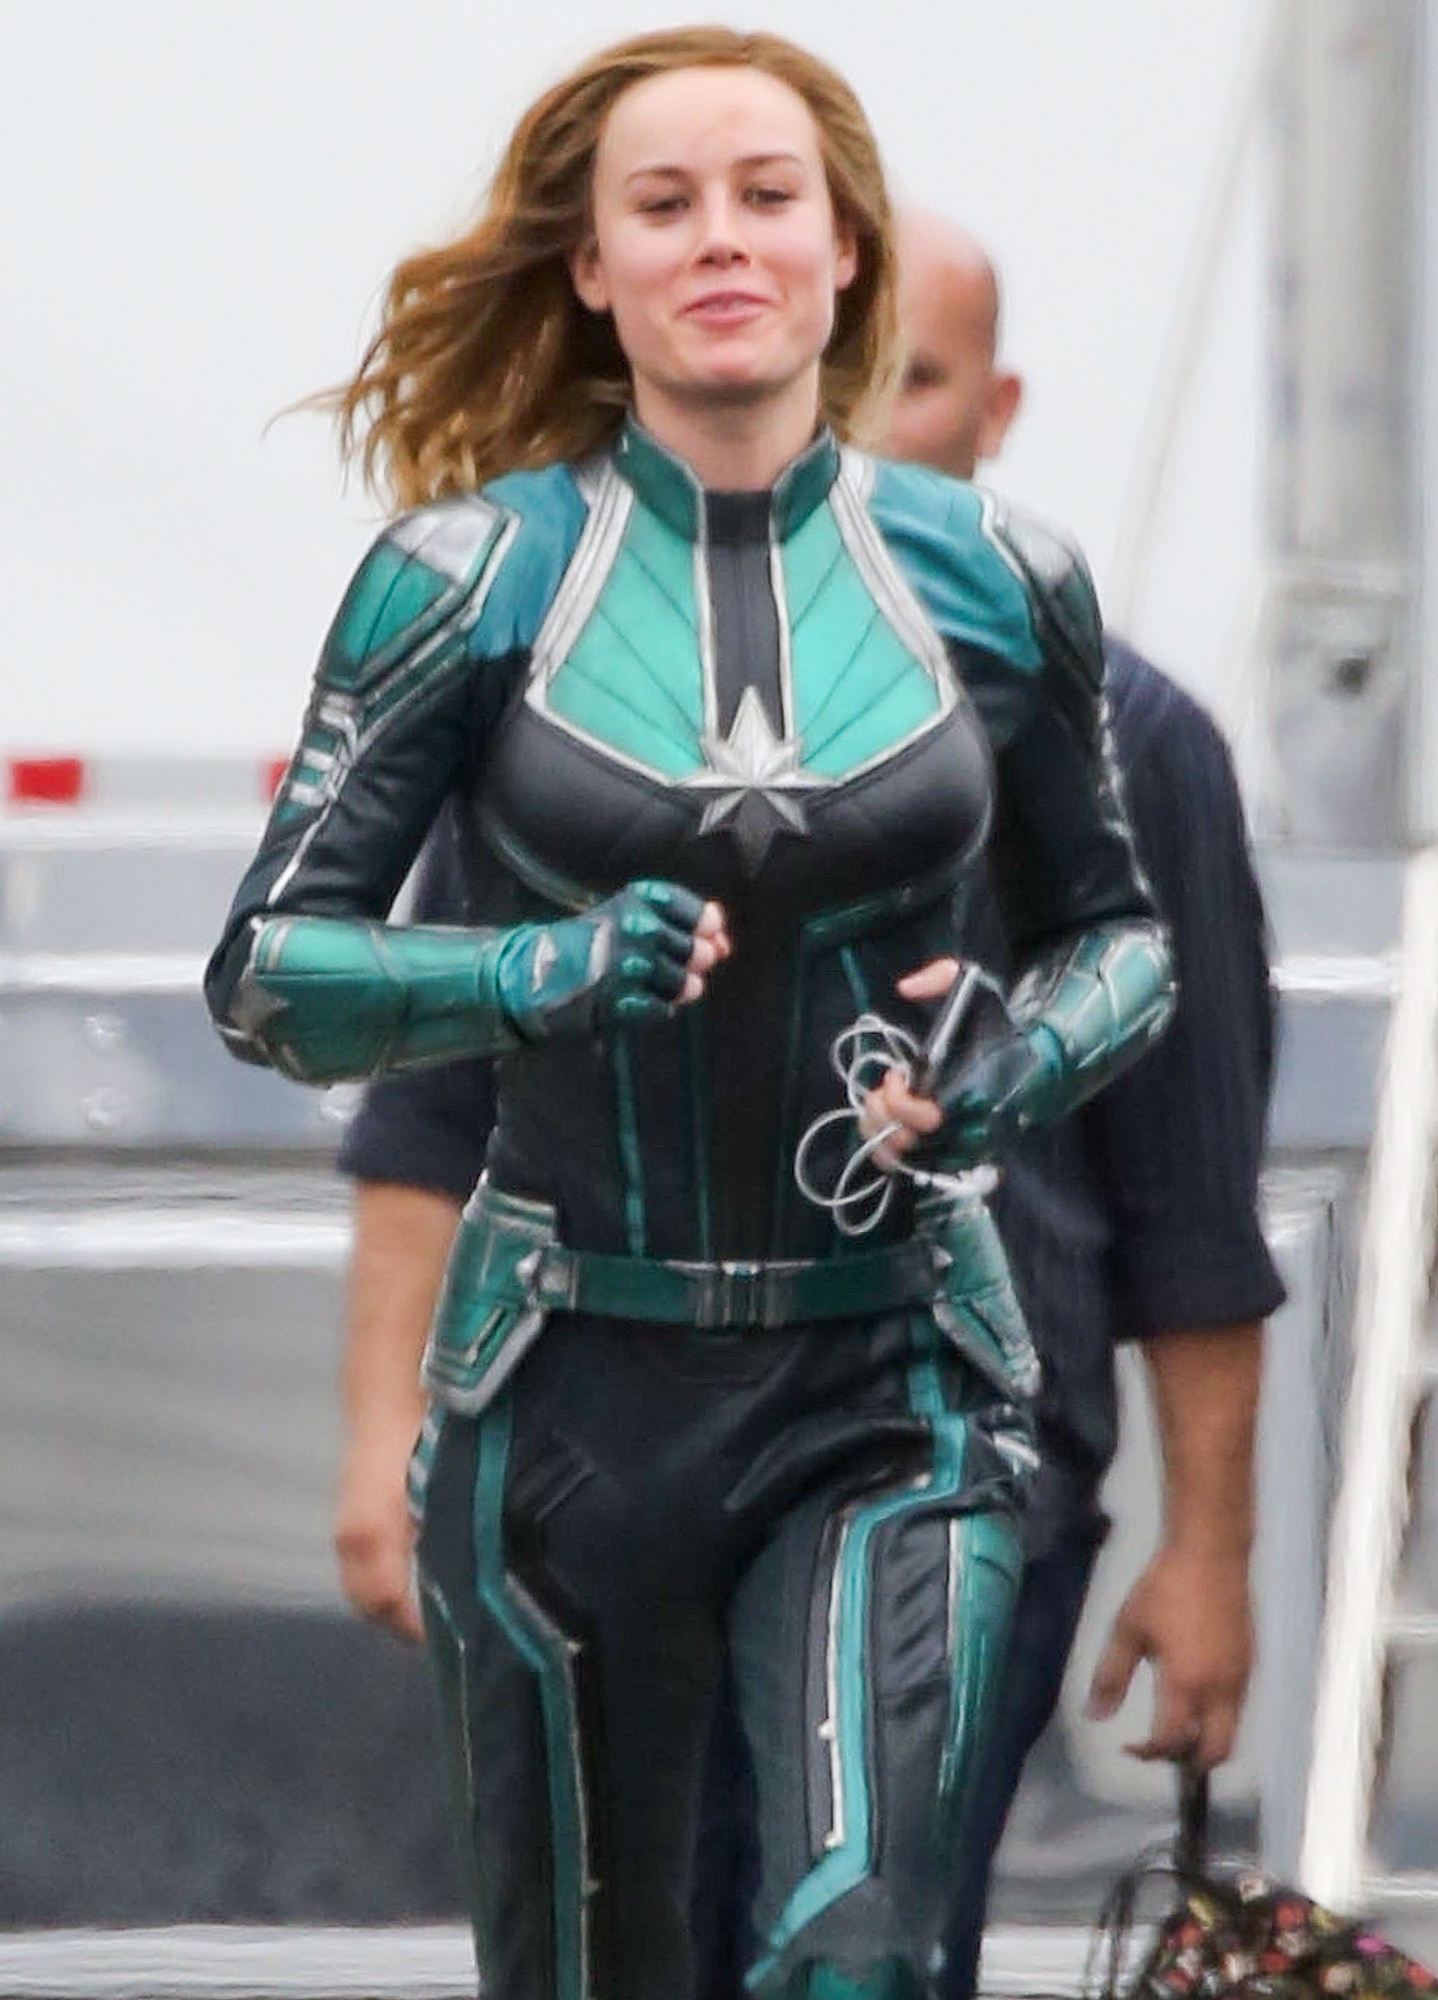 *EXCLUSIVE* Brie Larson is happy to see Jude Law on the set of 'Captain Marvel'